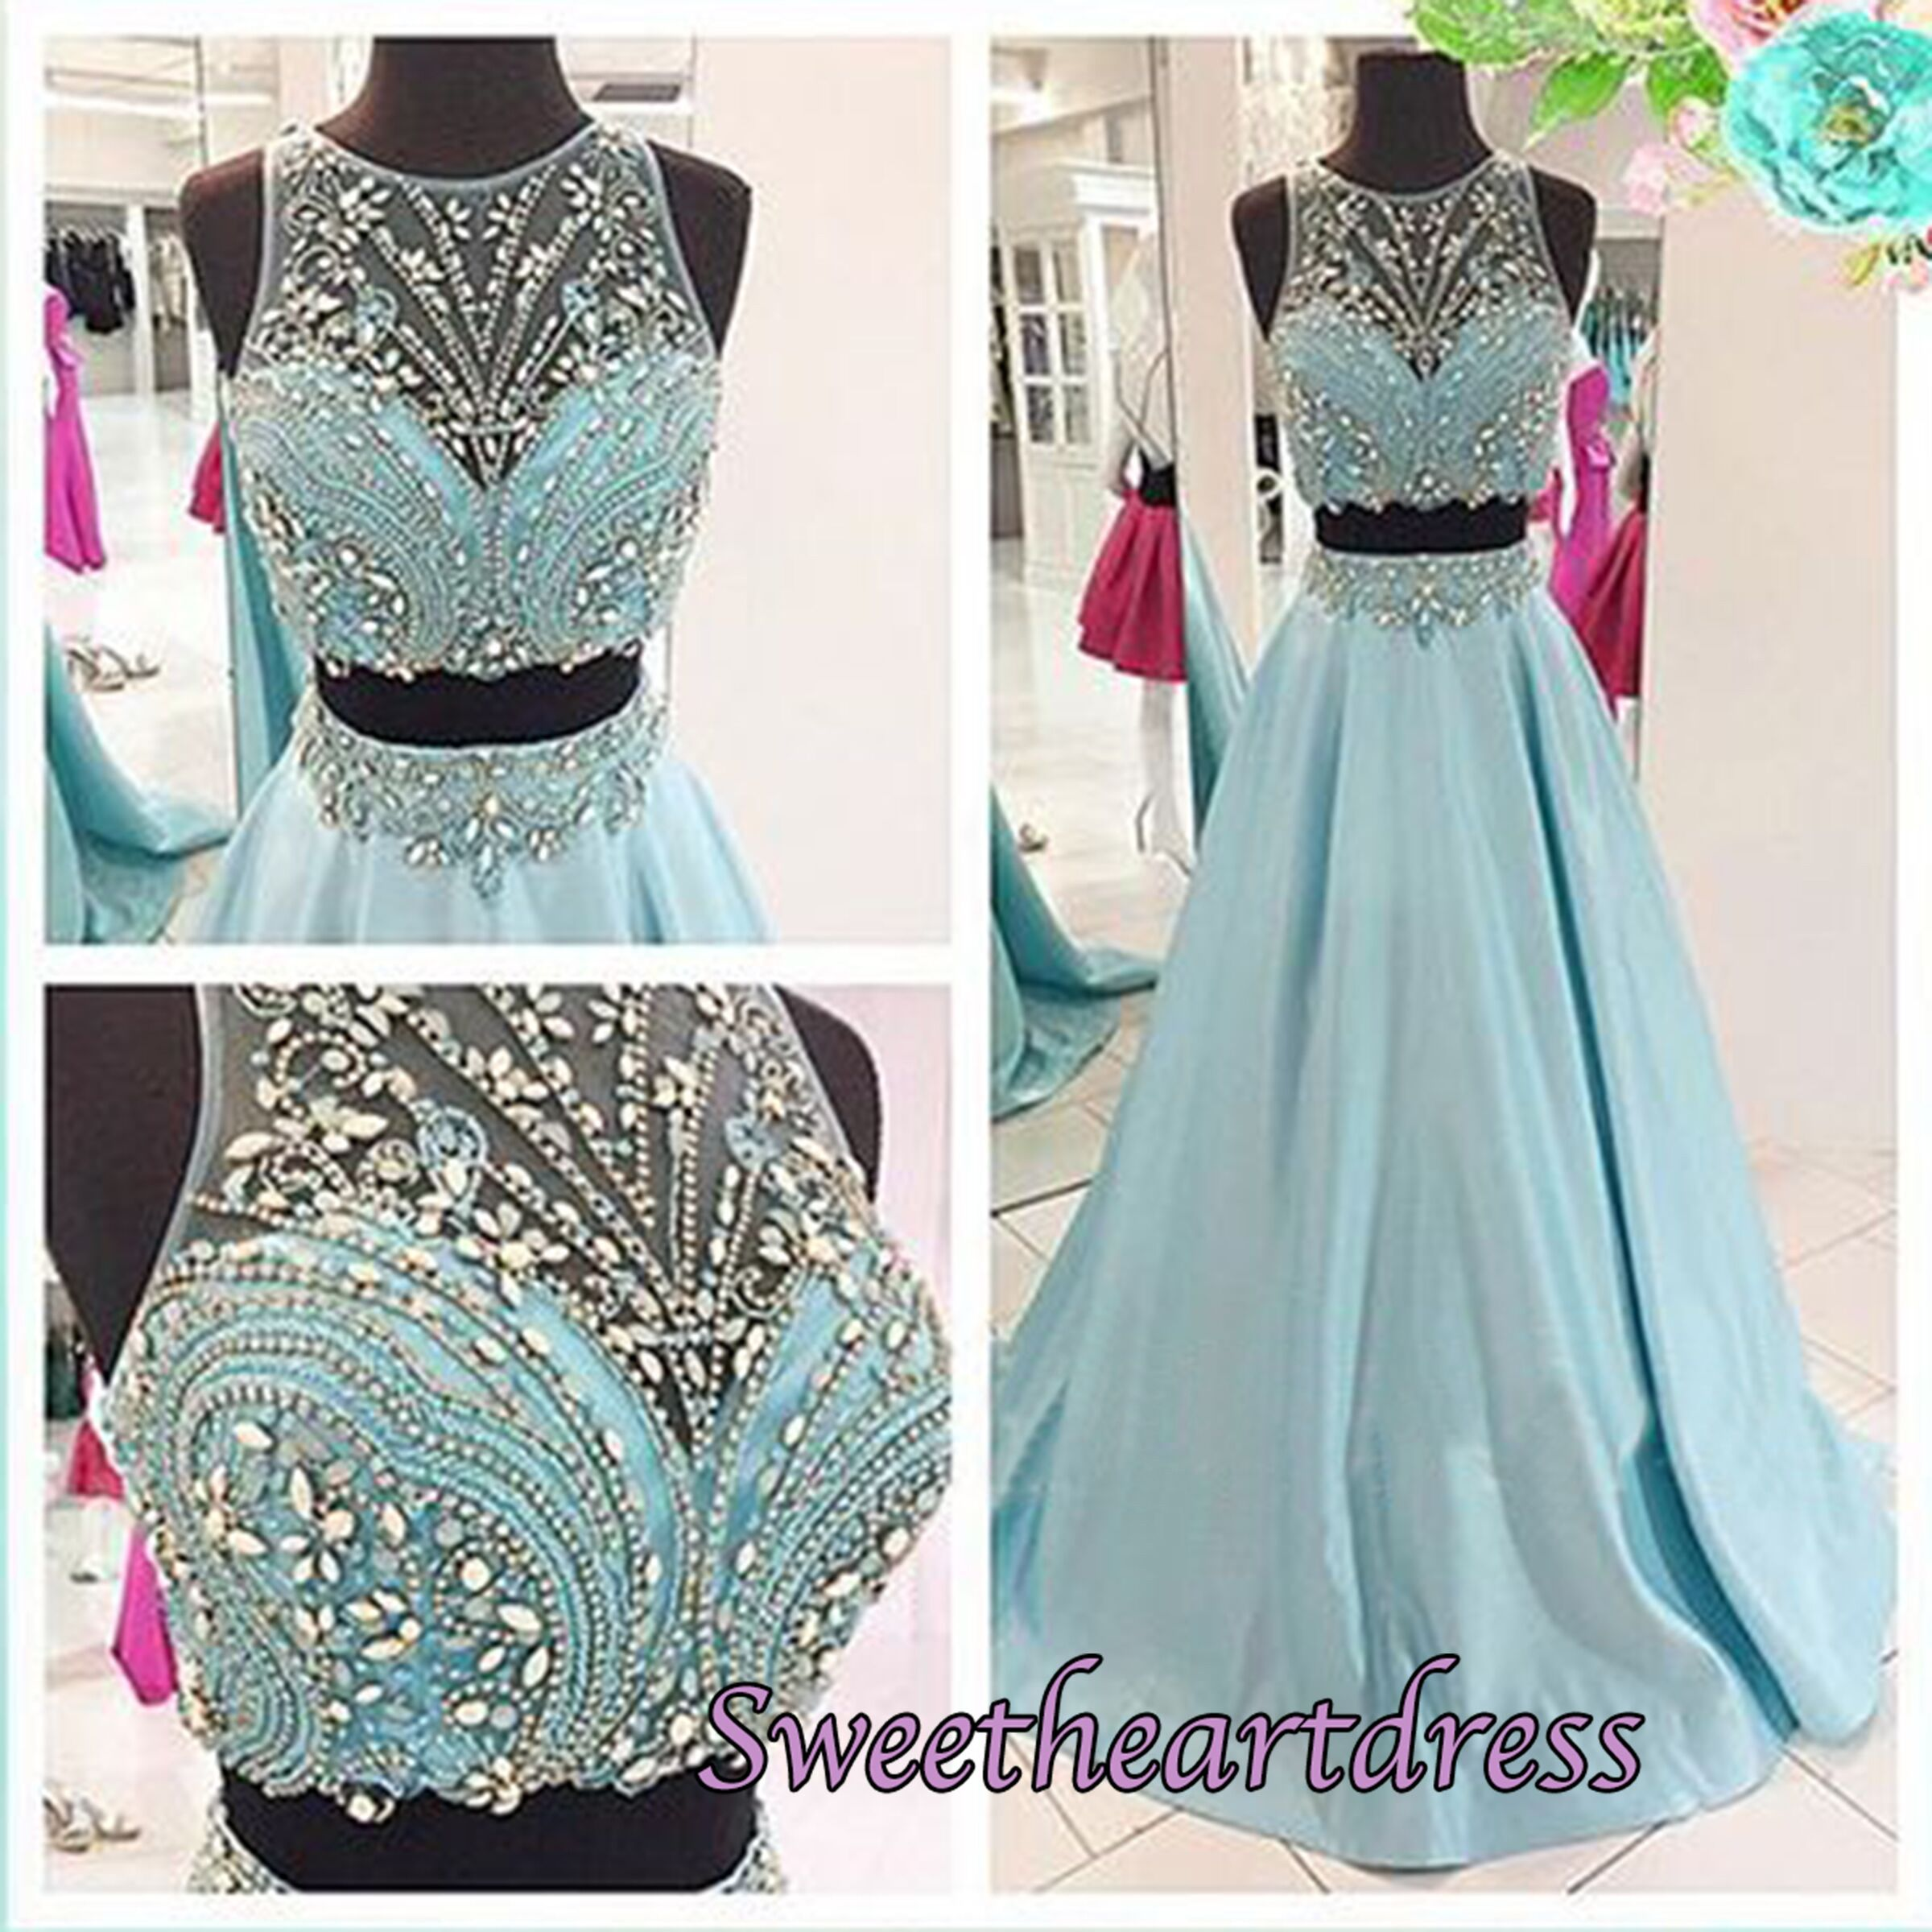 Pin by Kim O\'Neal on Very classy! | Pinterest | Long prom dresses ...